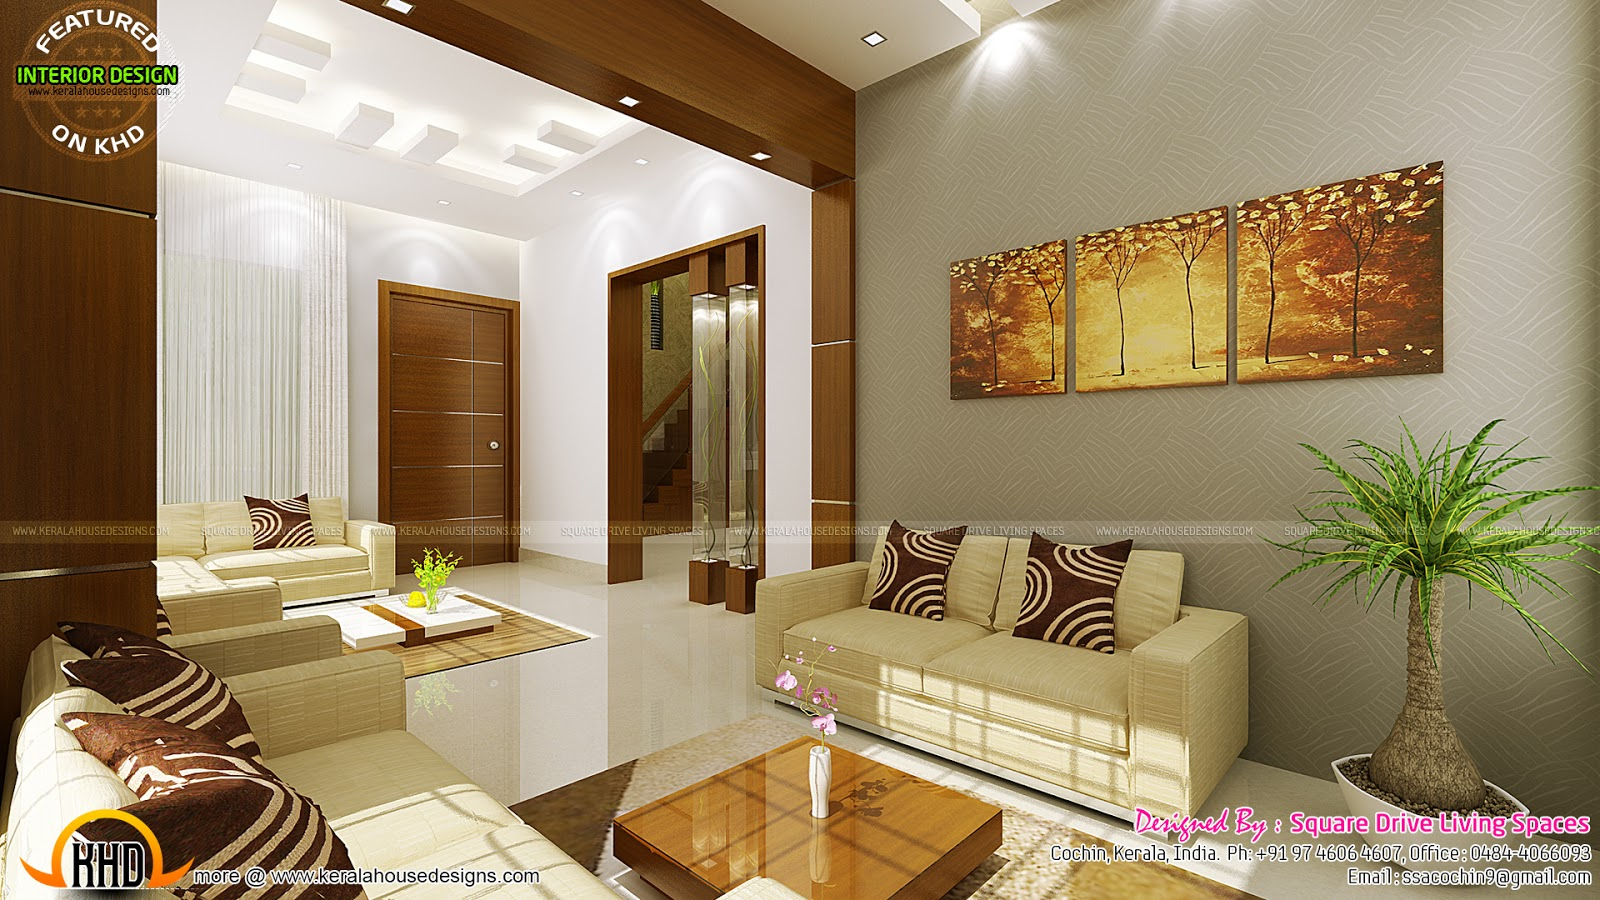 Contemporary kitchen dining and living room kerala home for Interior decoration designs living room